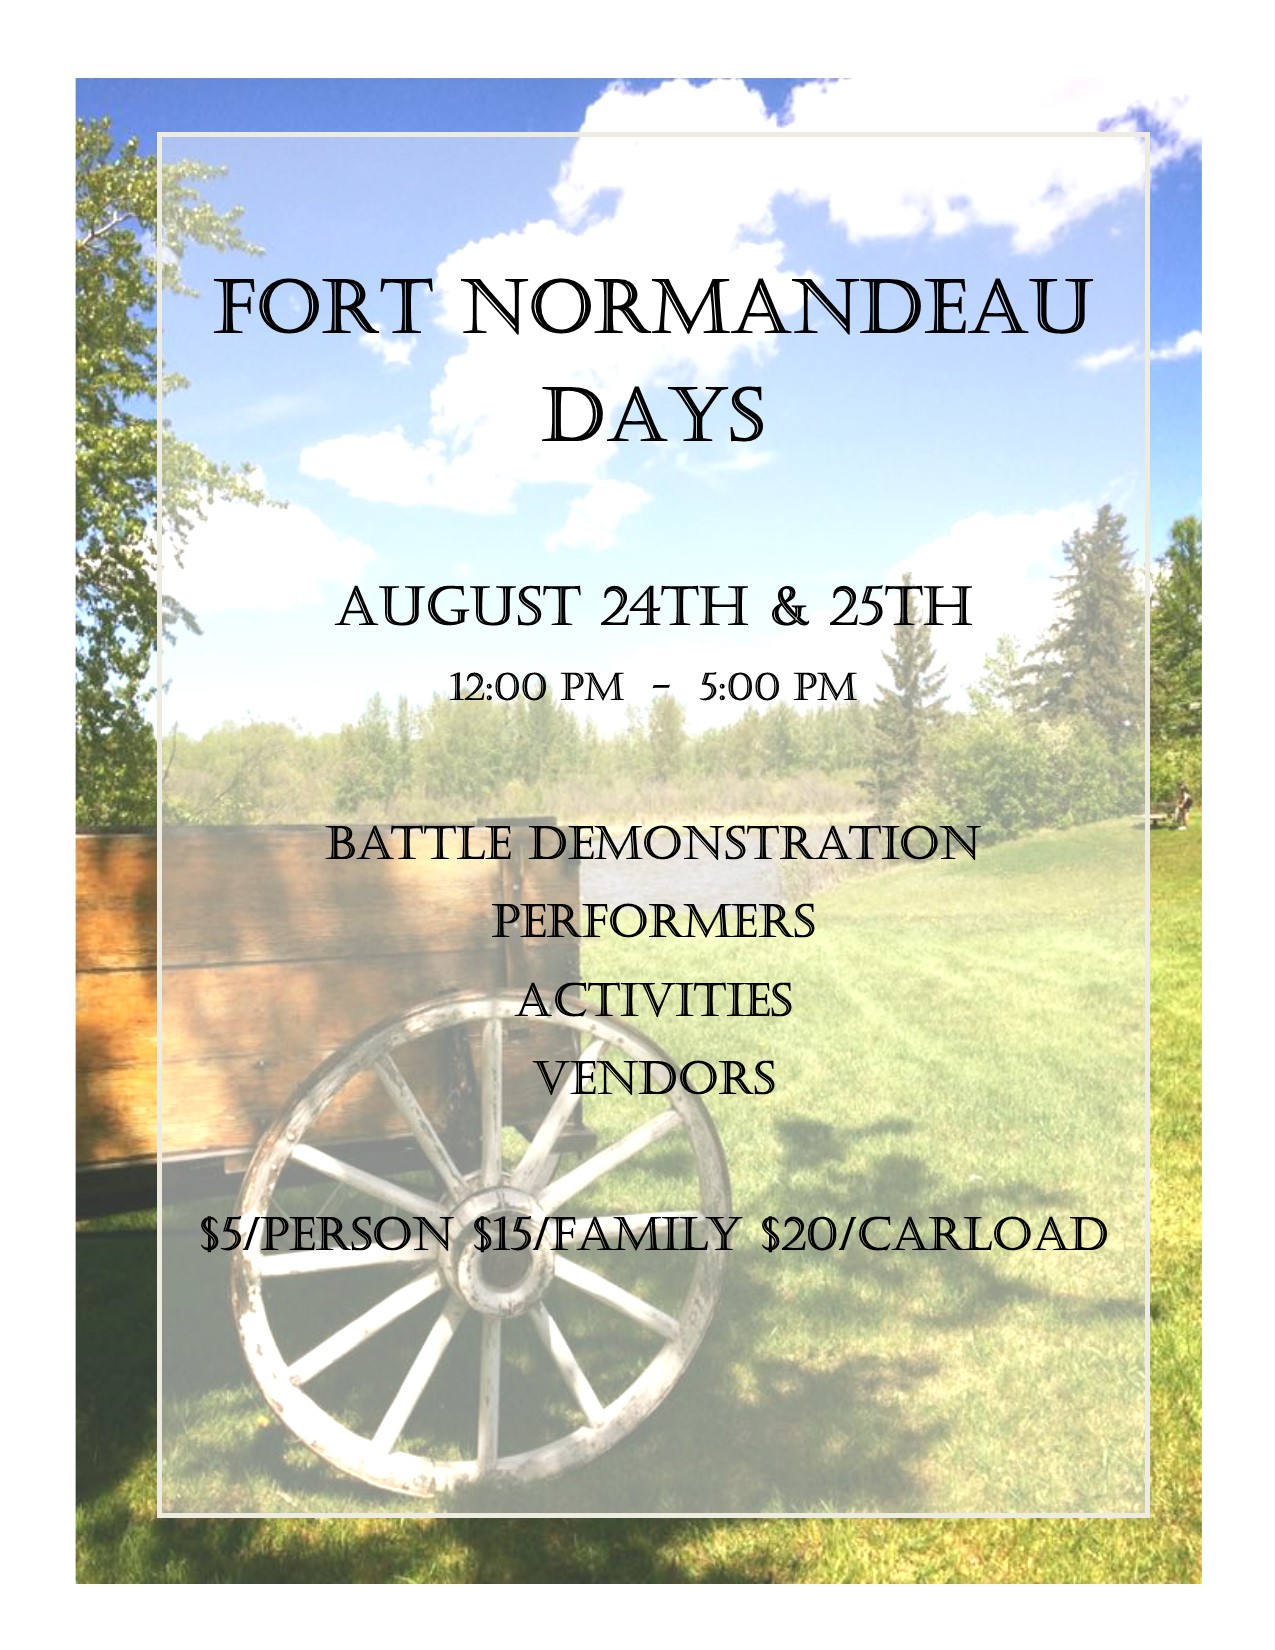 Fort Normandeau Days